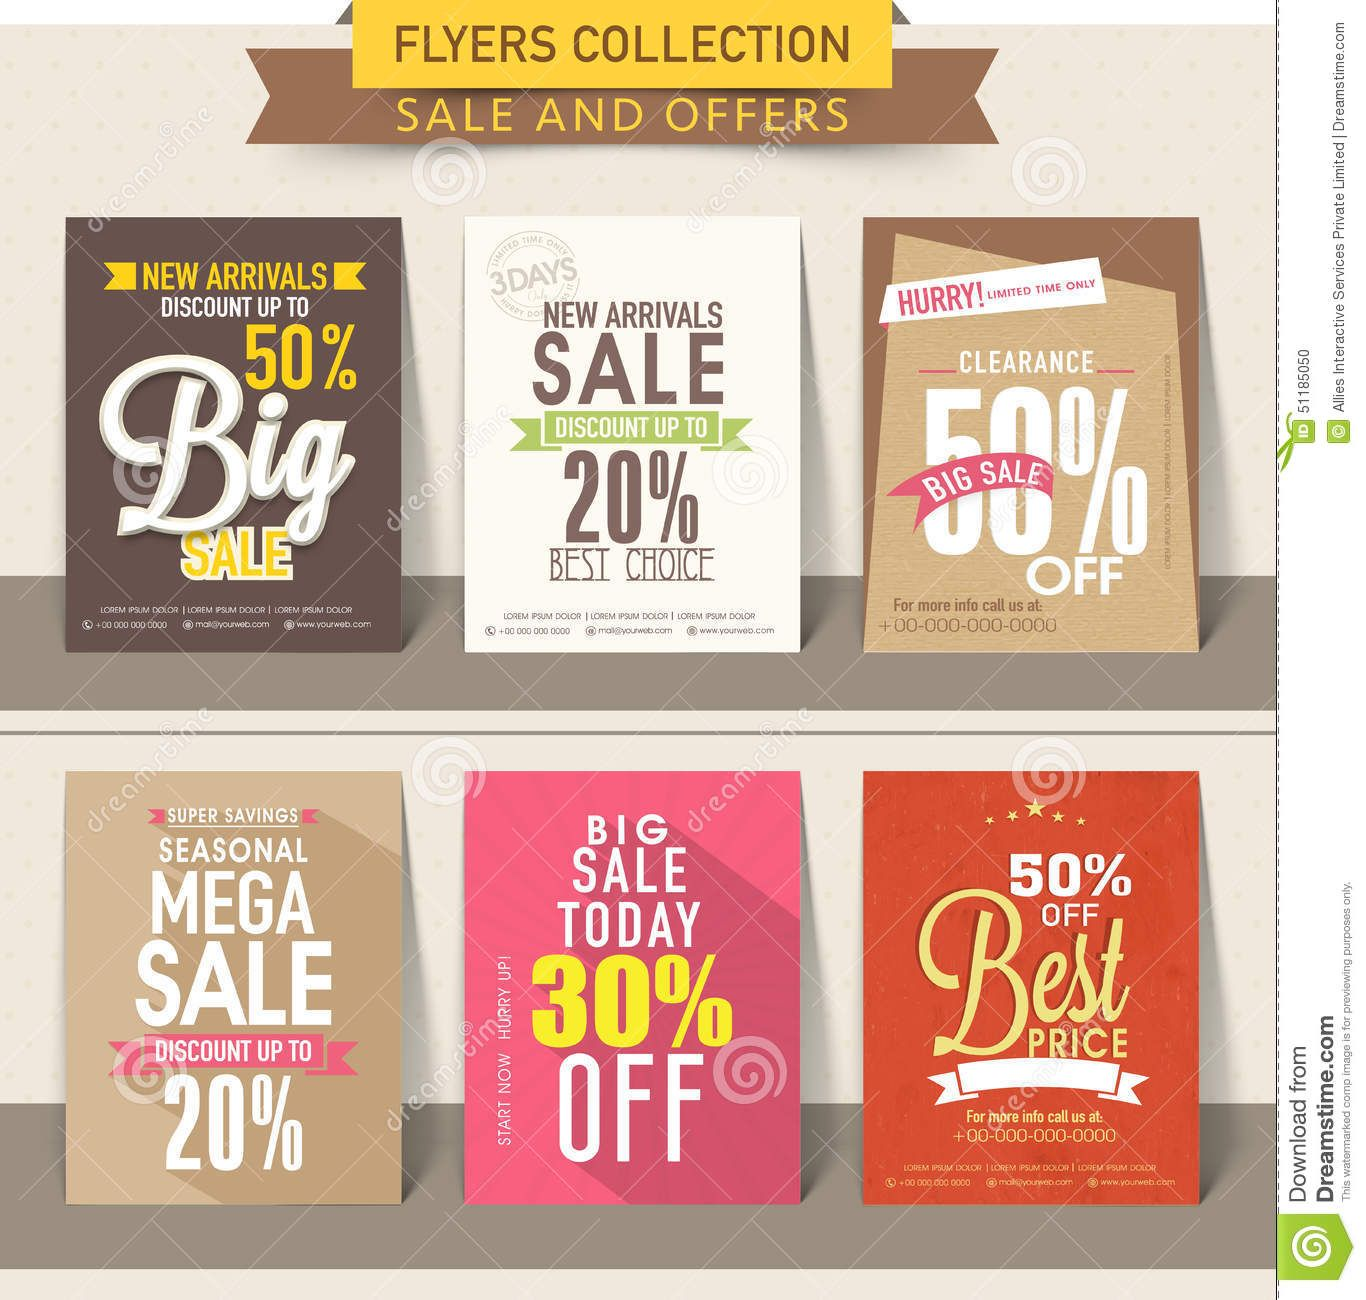 collection sale flyers offers poster banner design big. collection sale flyers offers poster banner design big discount